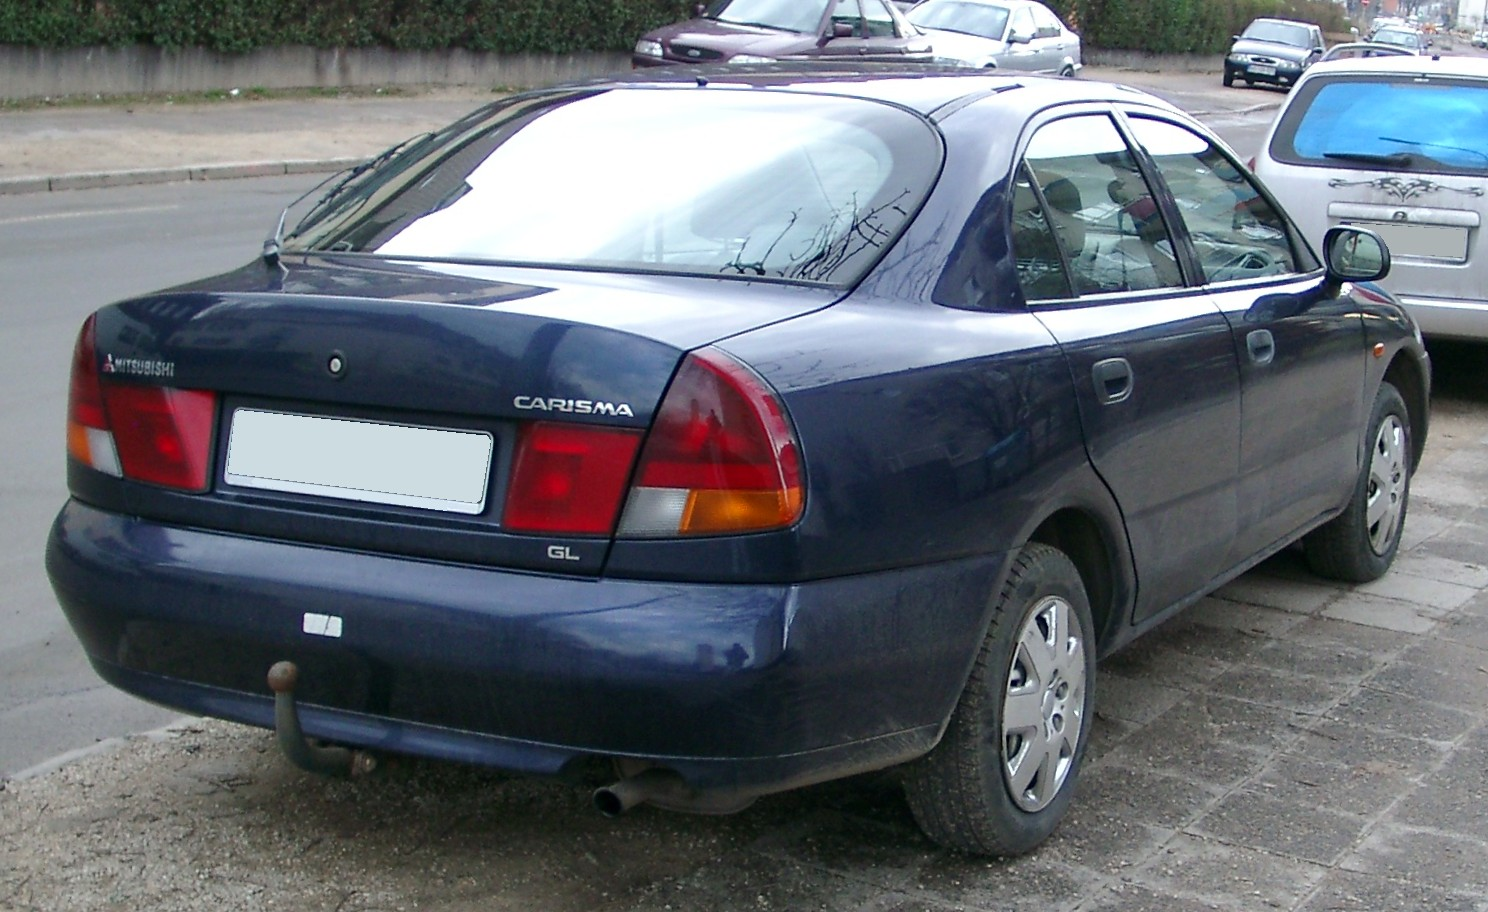 MITSUBISHI Carisma Sedan specs & photos - 1995, 1996, 1997, 1998, 1999, 2000, 2001, 2002, 2003 ...